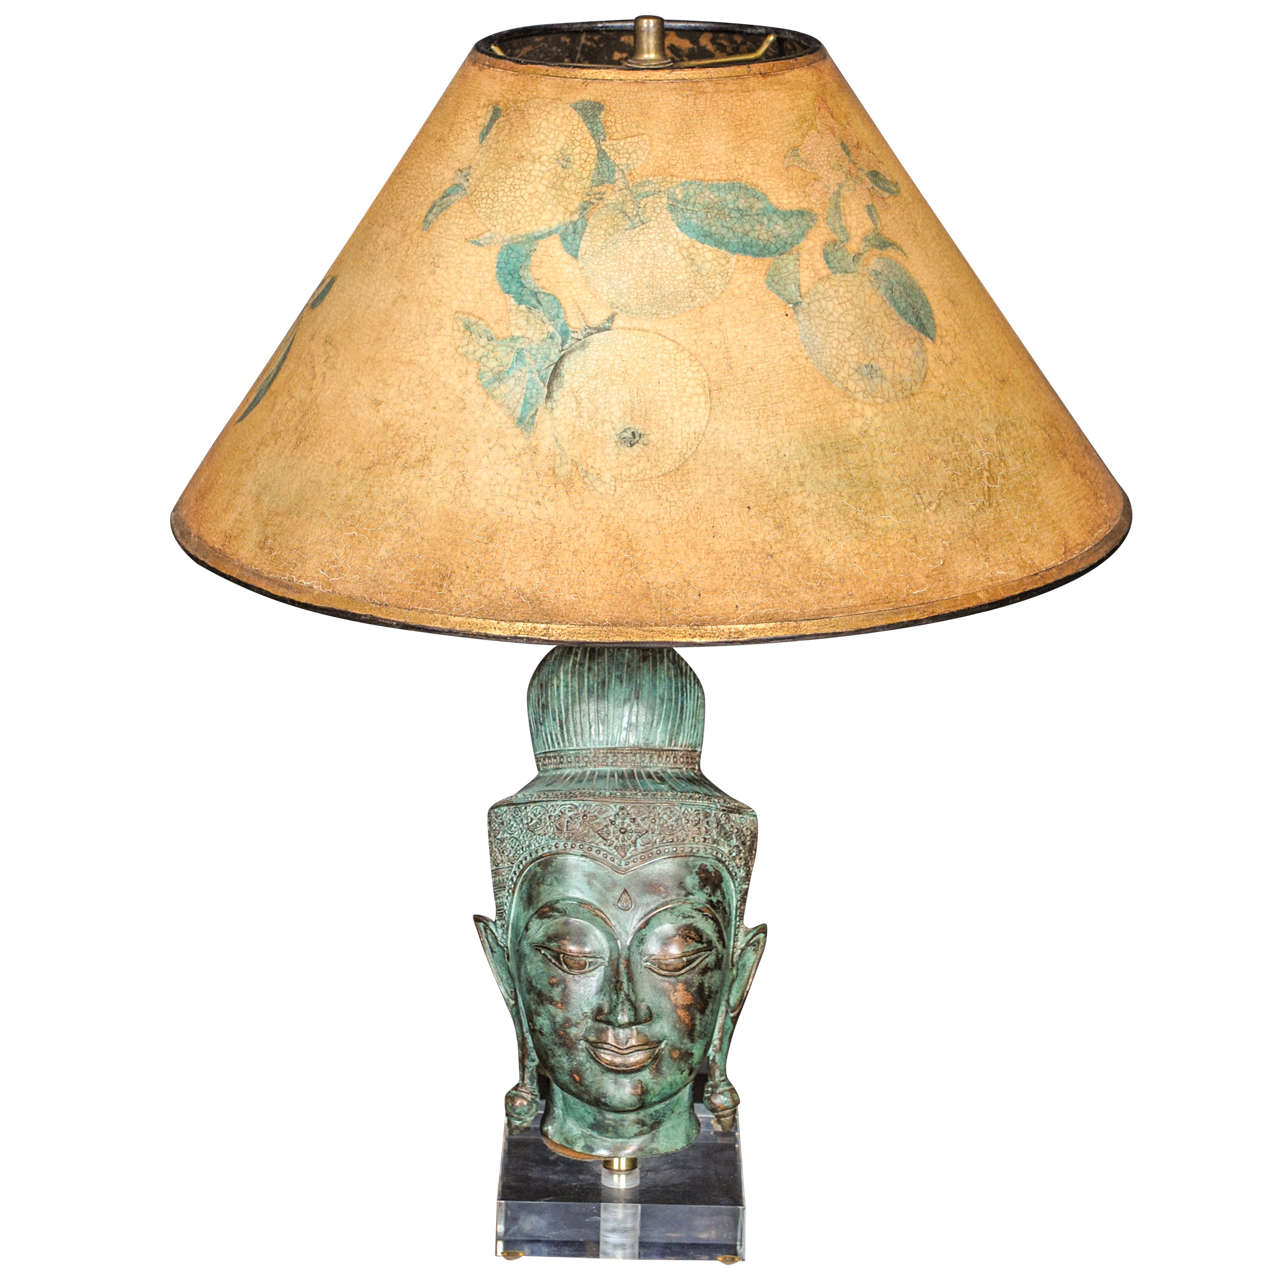 Eclectic Hollywood Regency Style Table Lamp with Thai Buddha Head ...